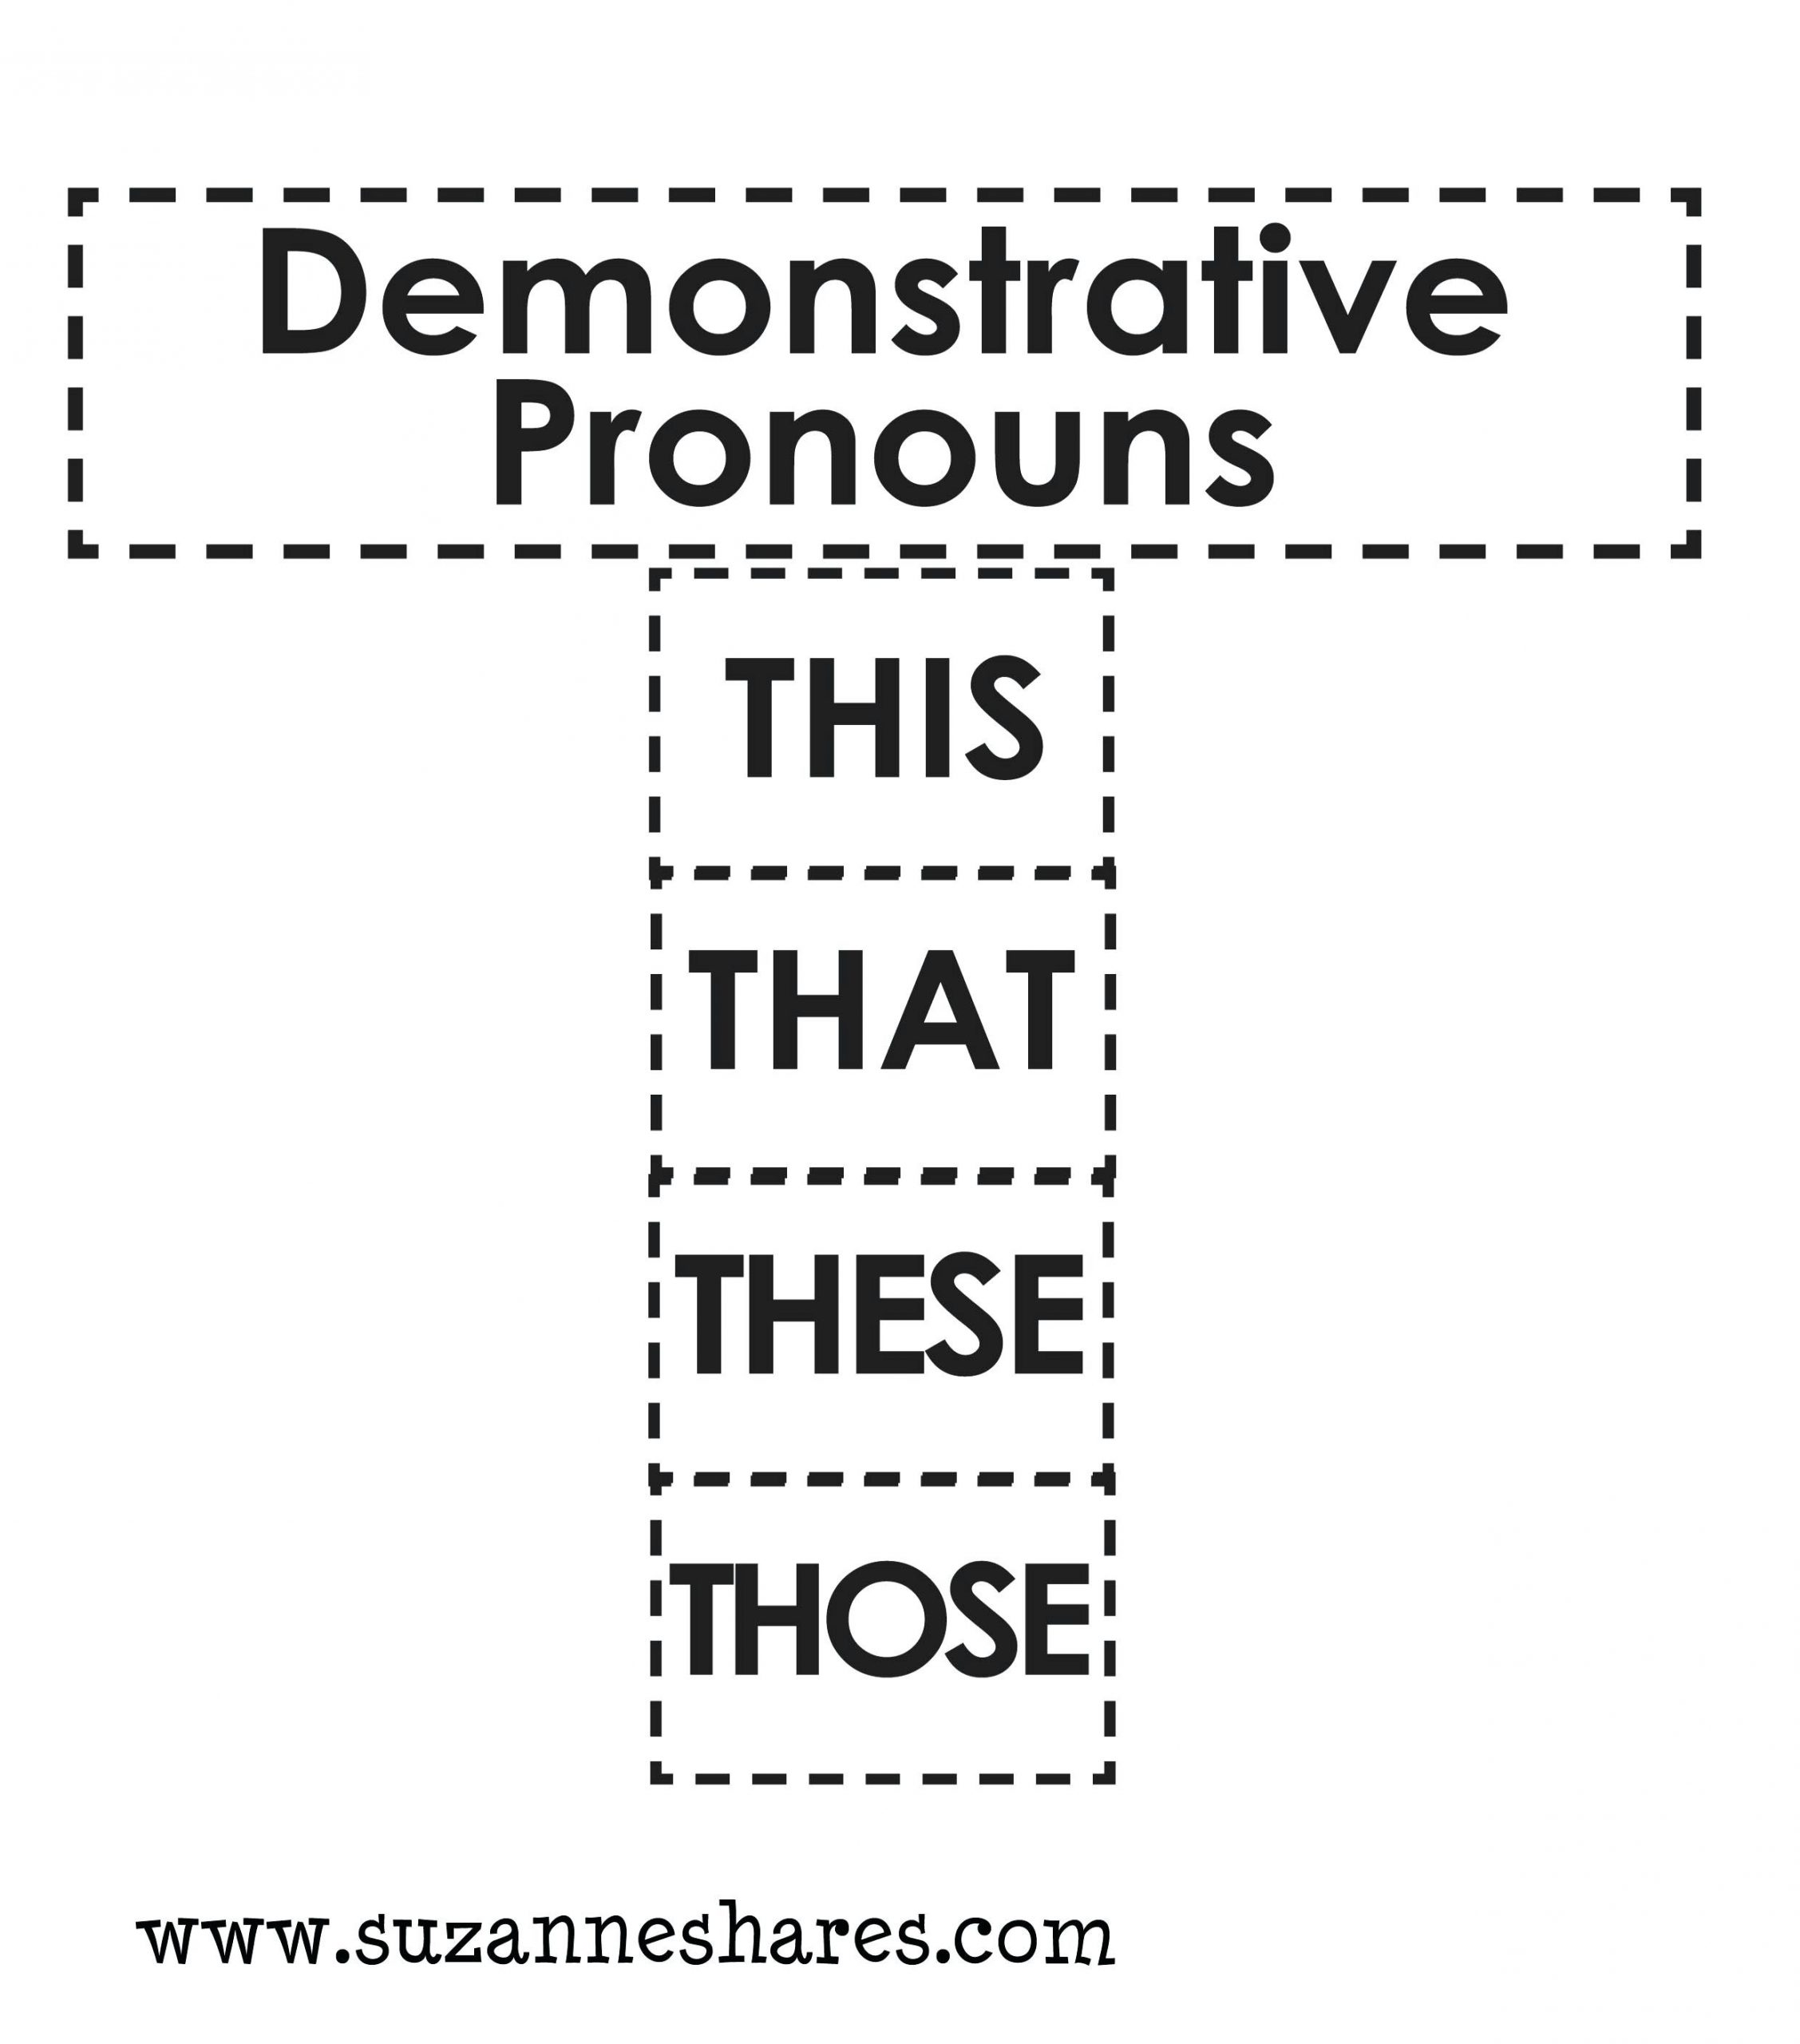 Relative Pronouns Worksheet 4th Grade Interrogative Pronouns Worksheets for Kids – Momami